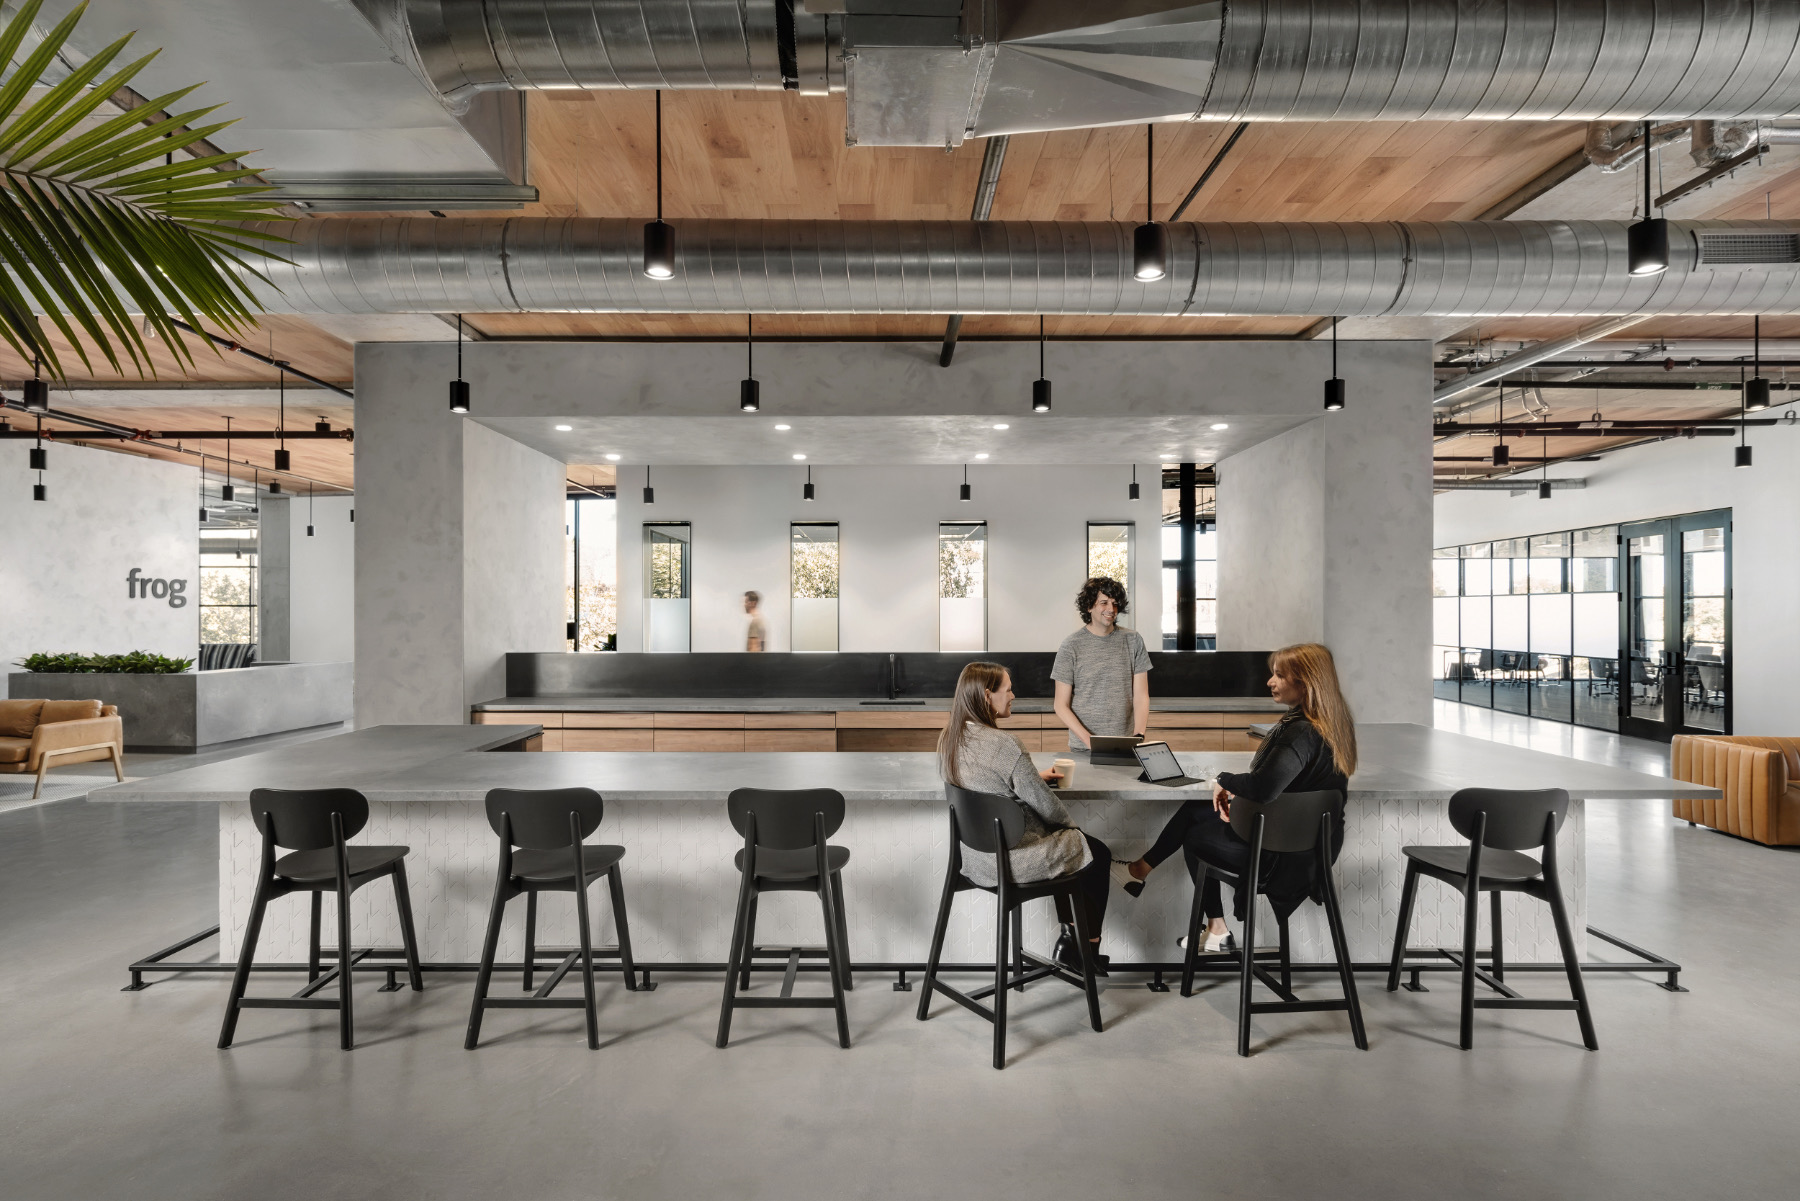 frog-design-austin-office-3